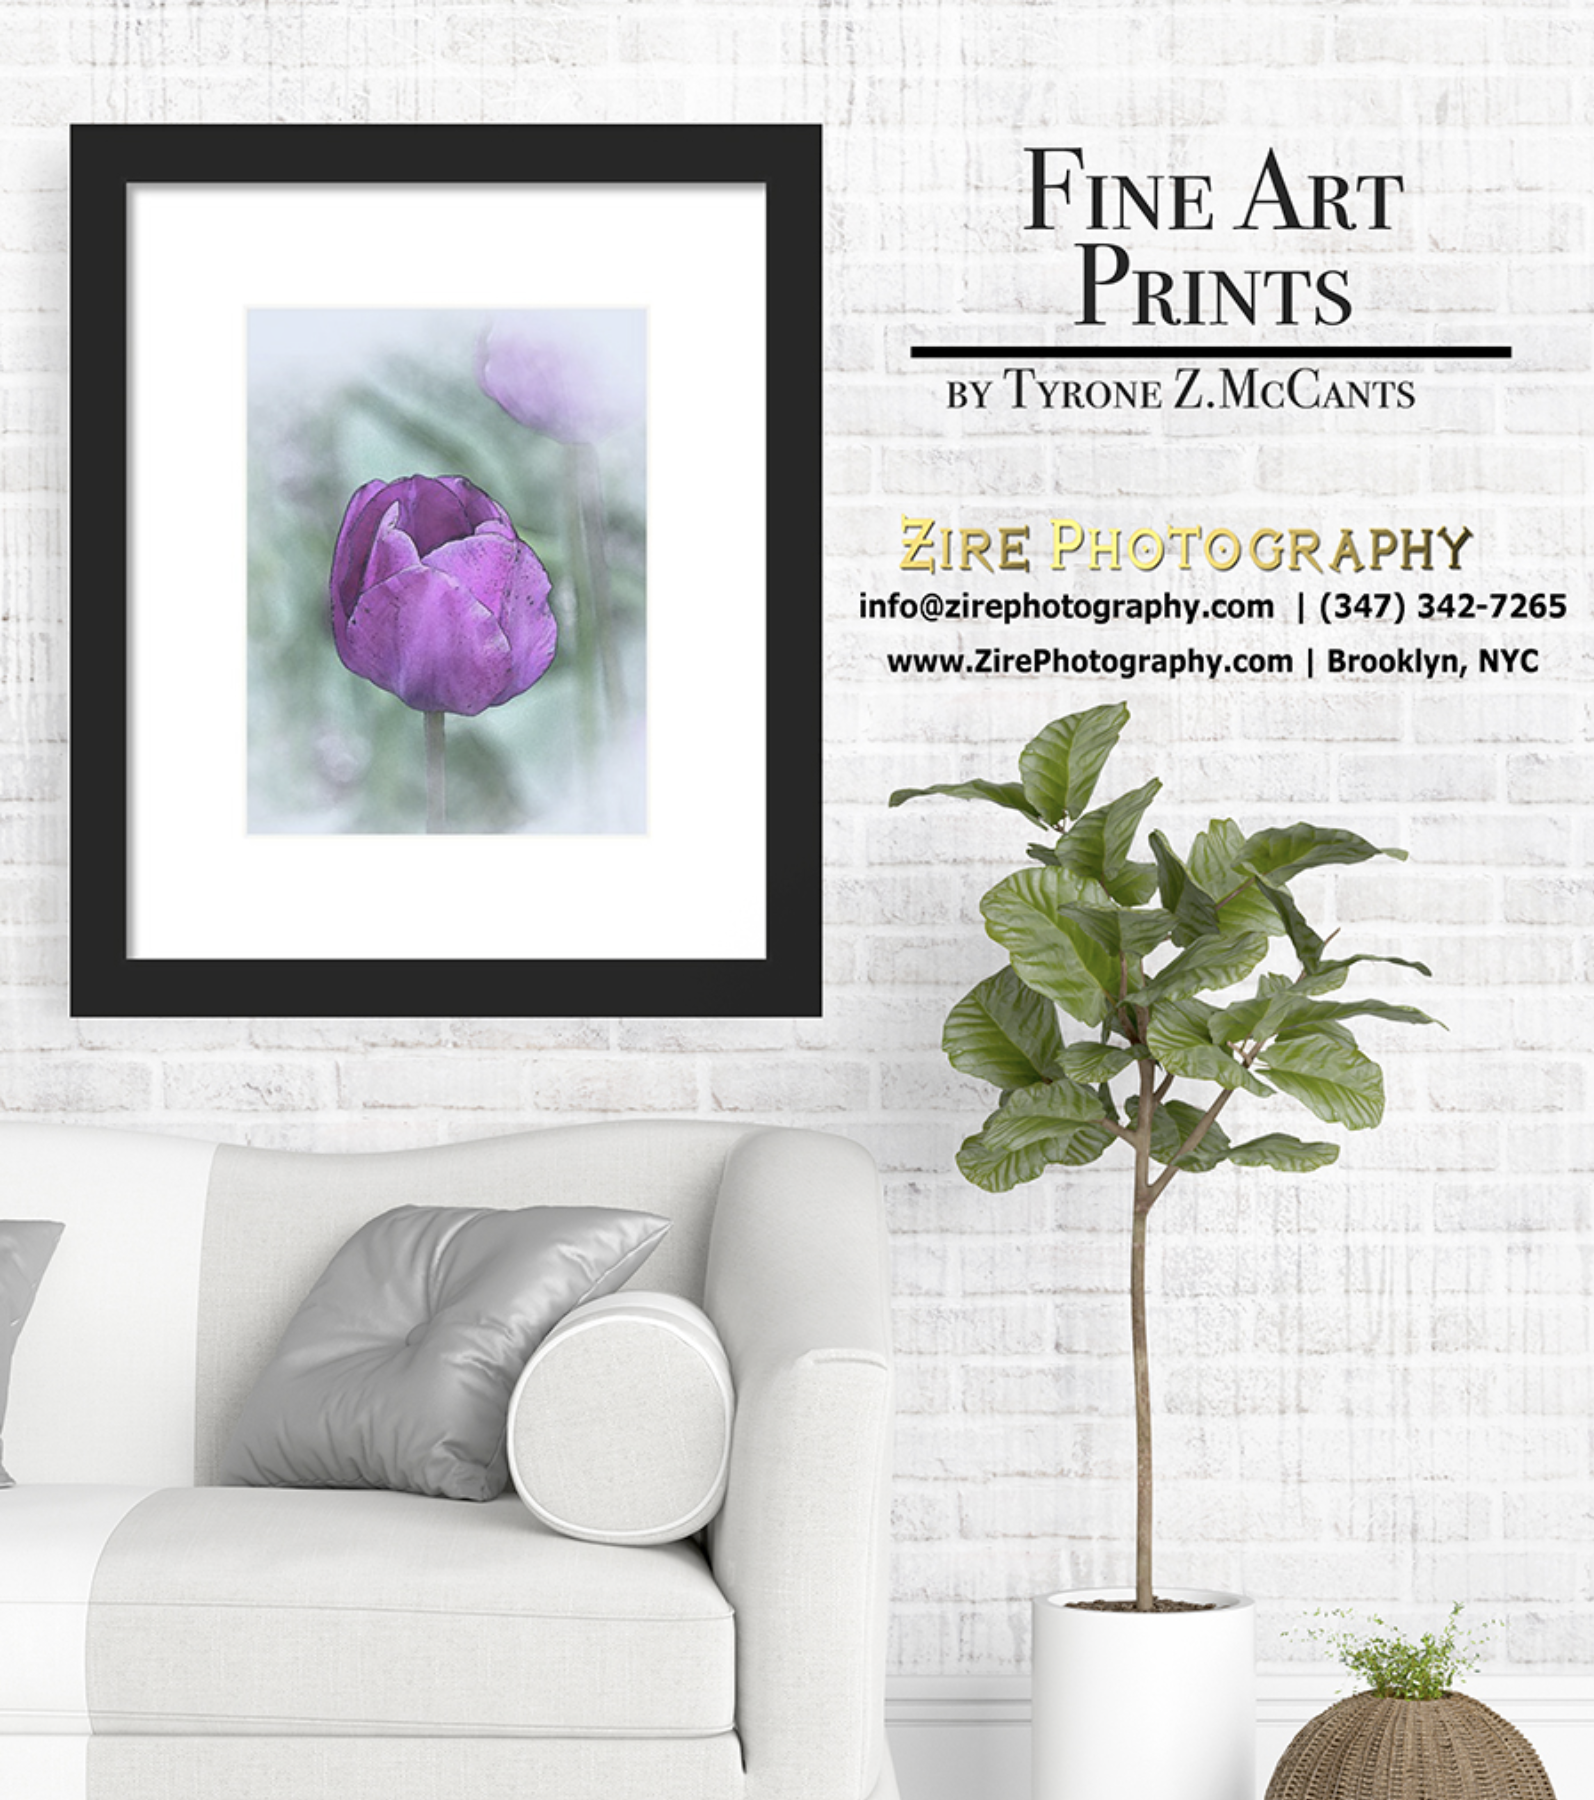 Fine Art Prints Ad.png